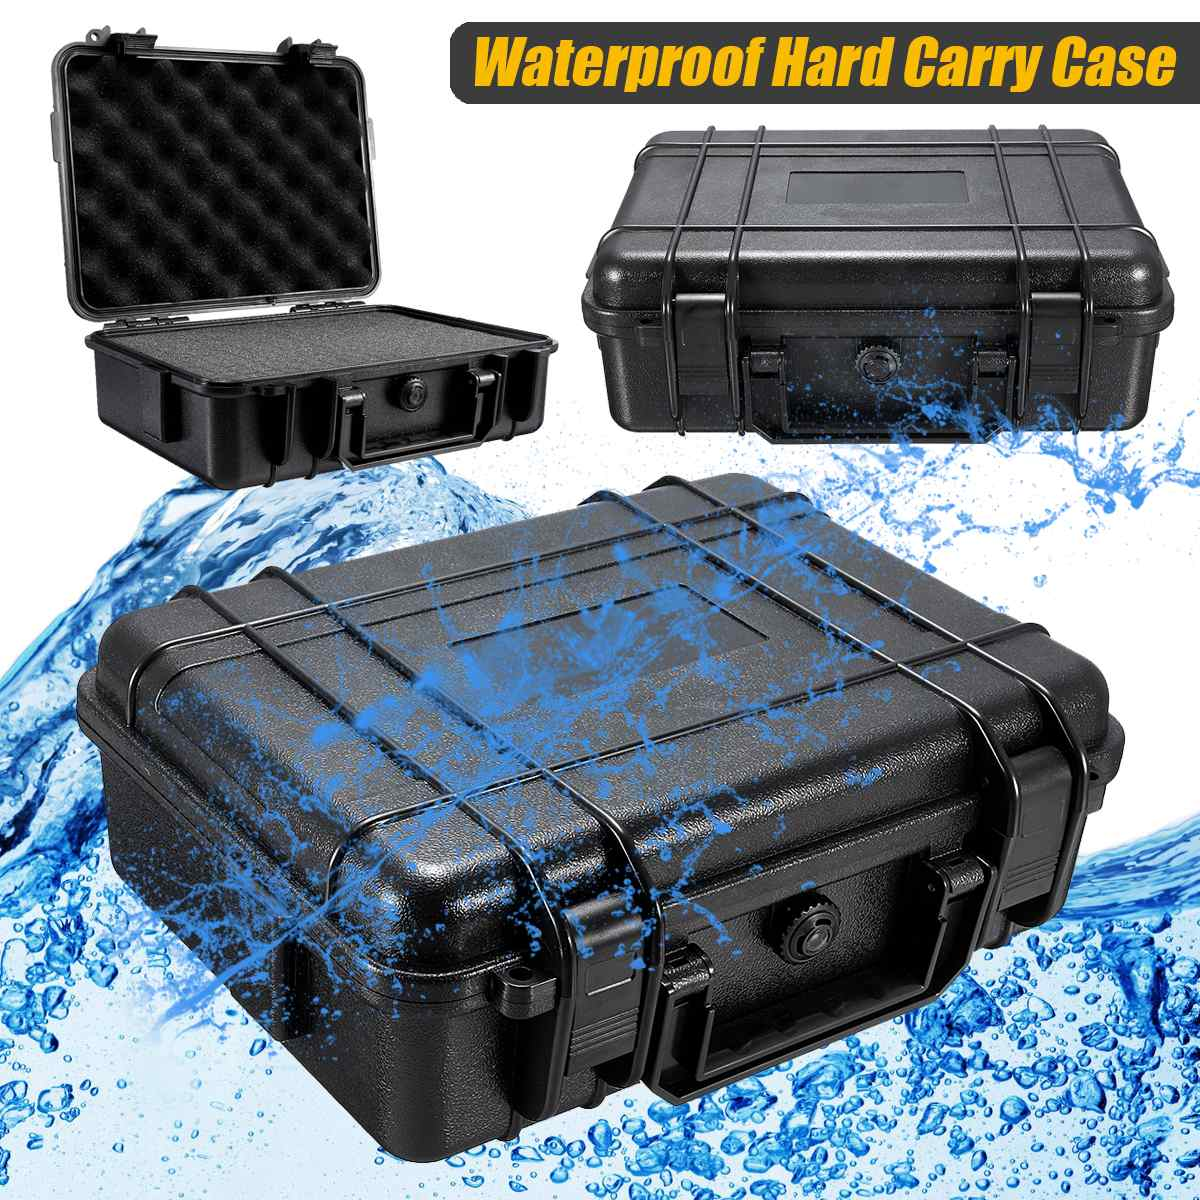 5 Sizes Waterproof Hard Carry Case Bag Tool Kits With Sponge Storage Box Safety Protector Organizer Hardware Toolbox